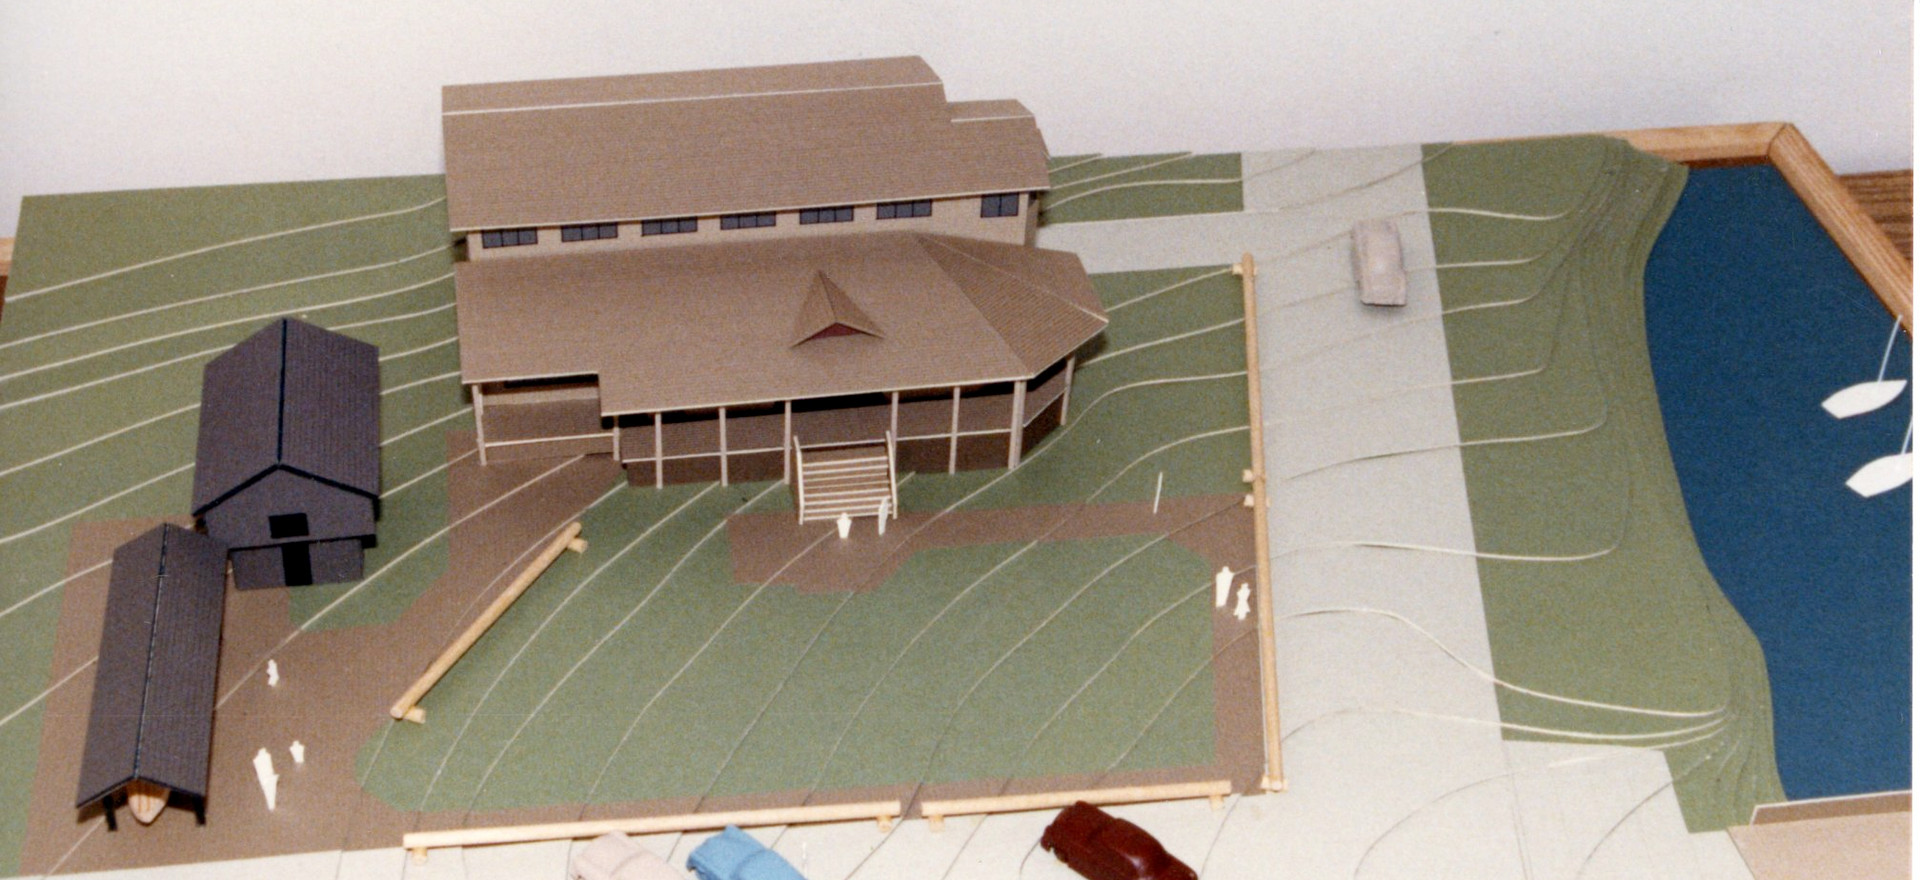 Model of the new museum